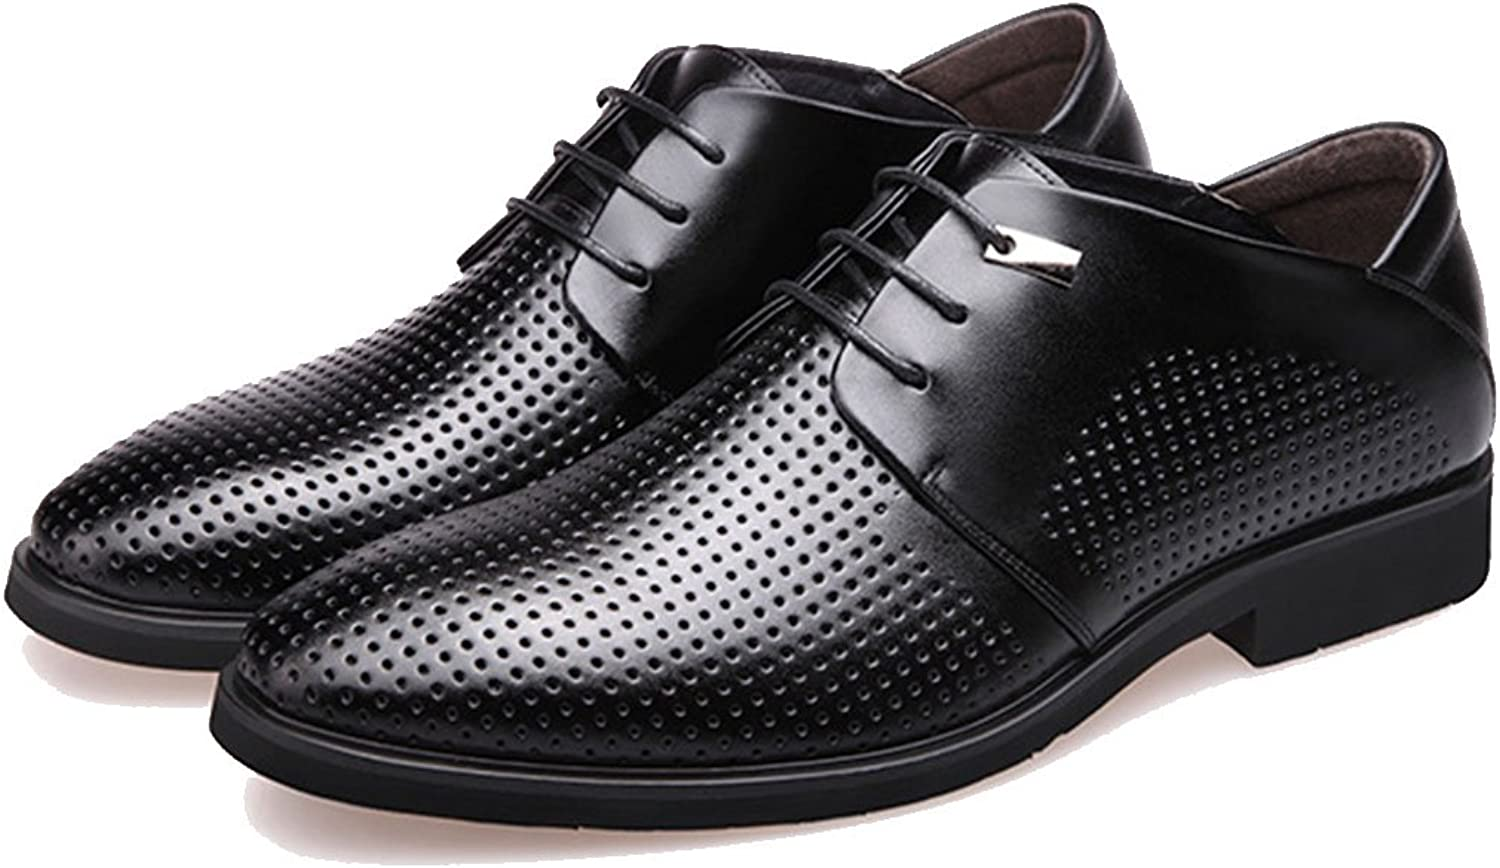 GAOLIXIA Men's Summer Formal Business Breathable Leather shoes British Lace-up Hollow Sandals Fashion Dress shoes Office Career Work shoes